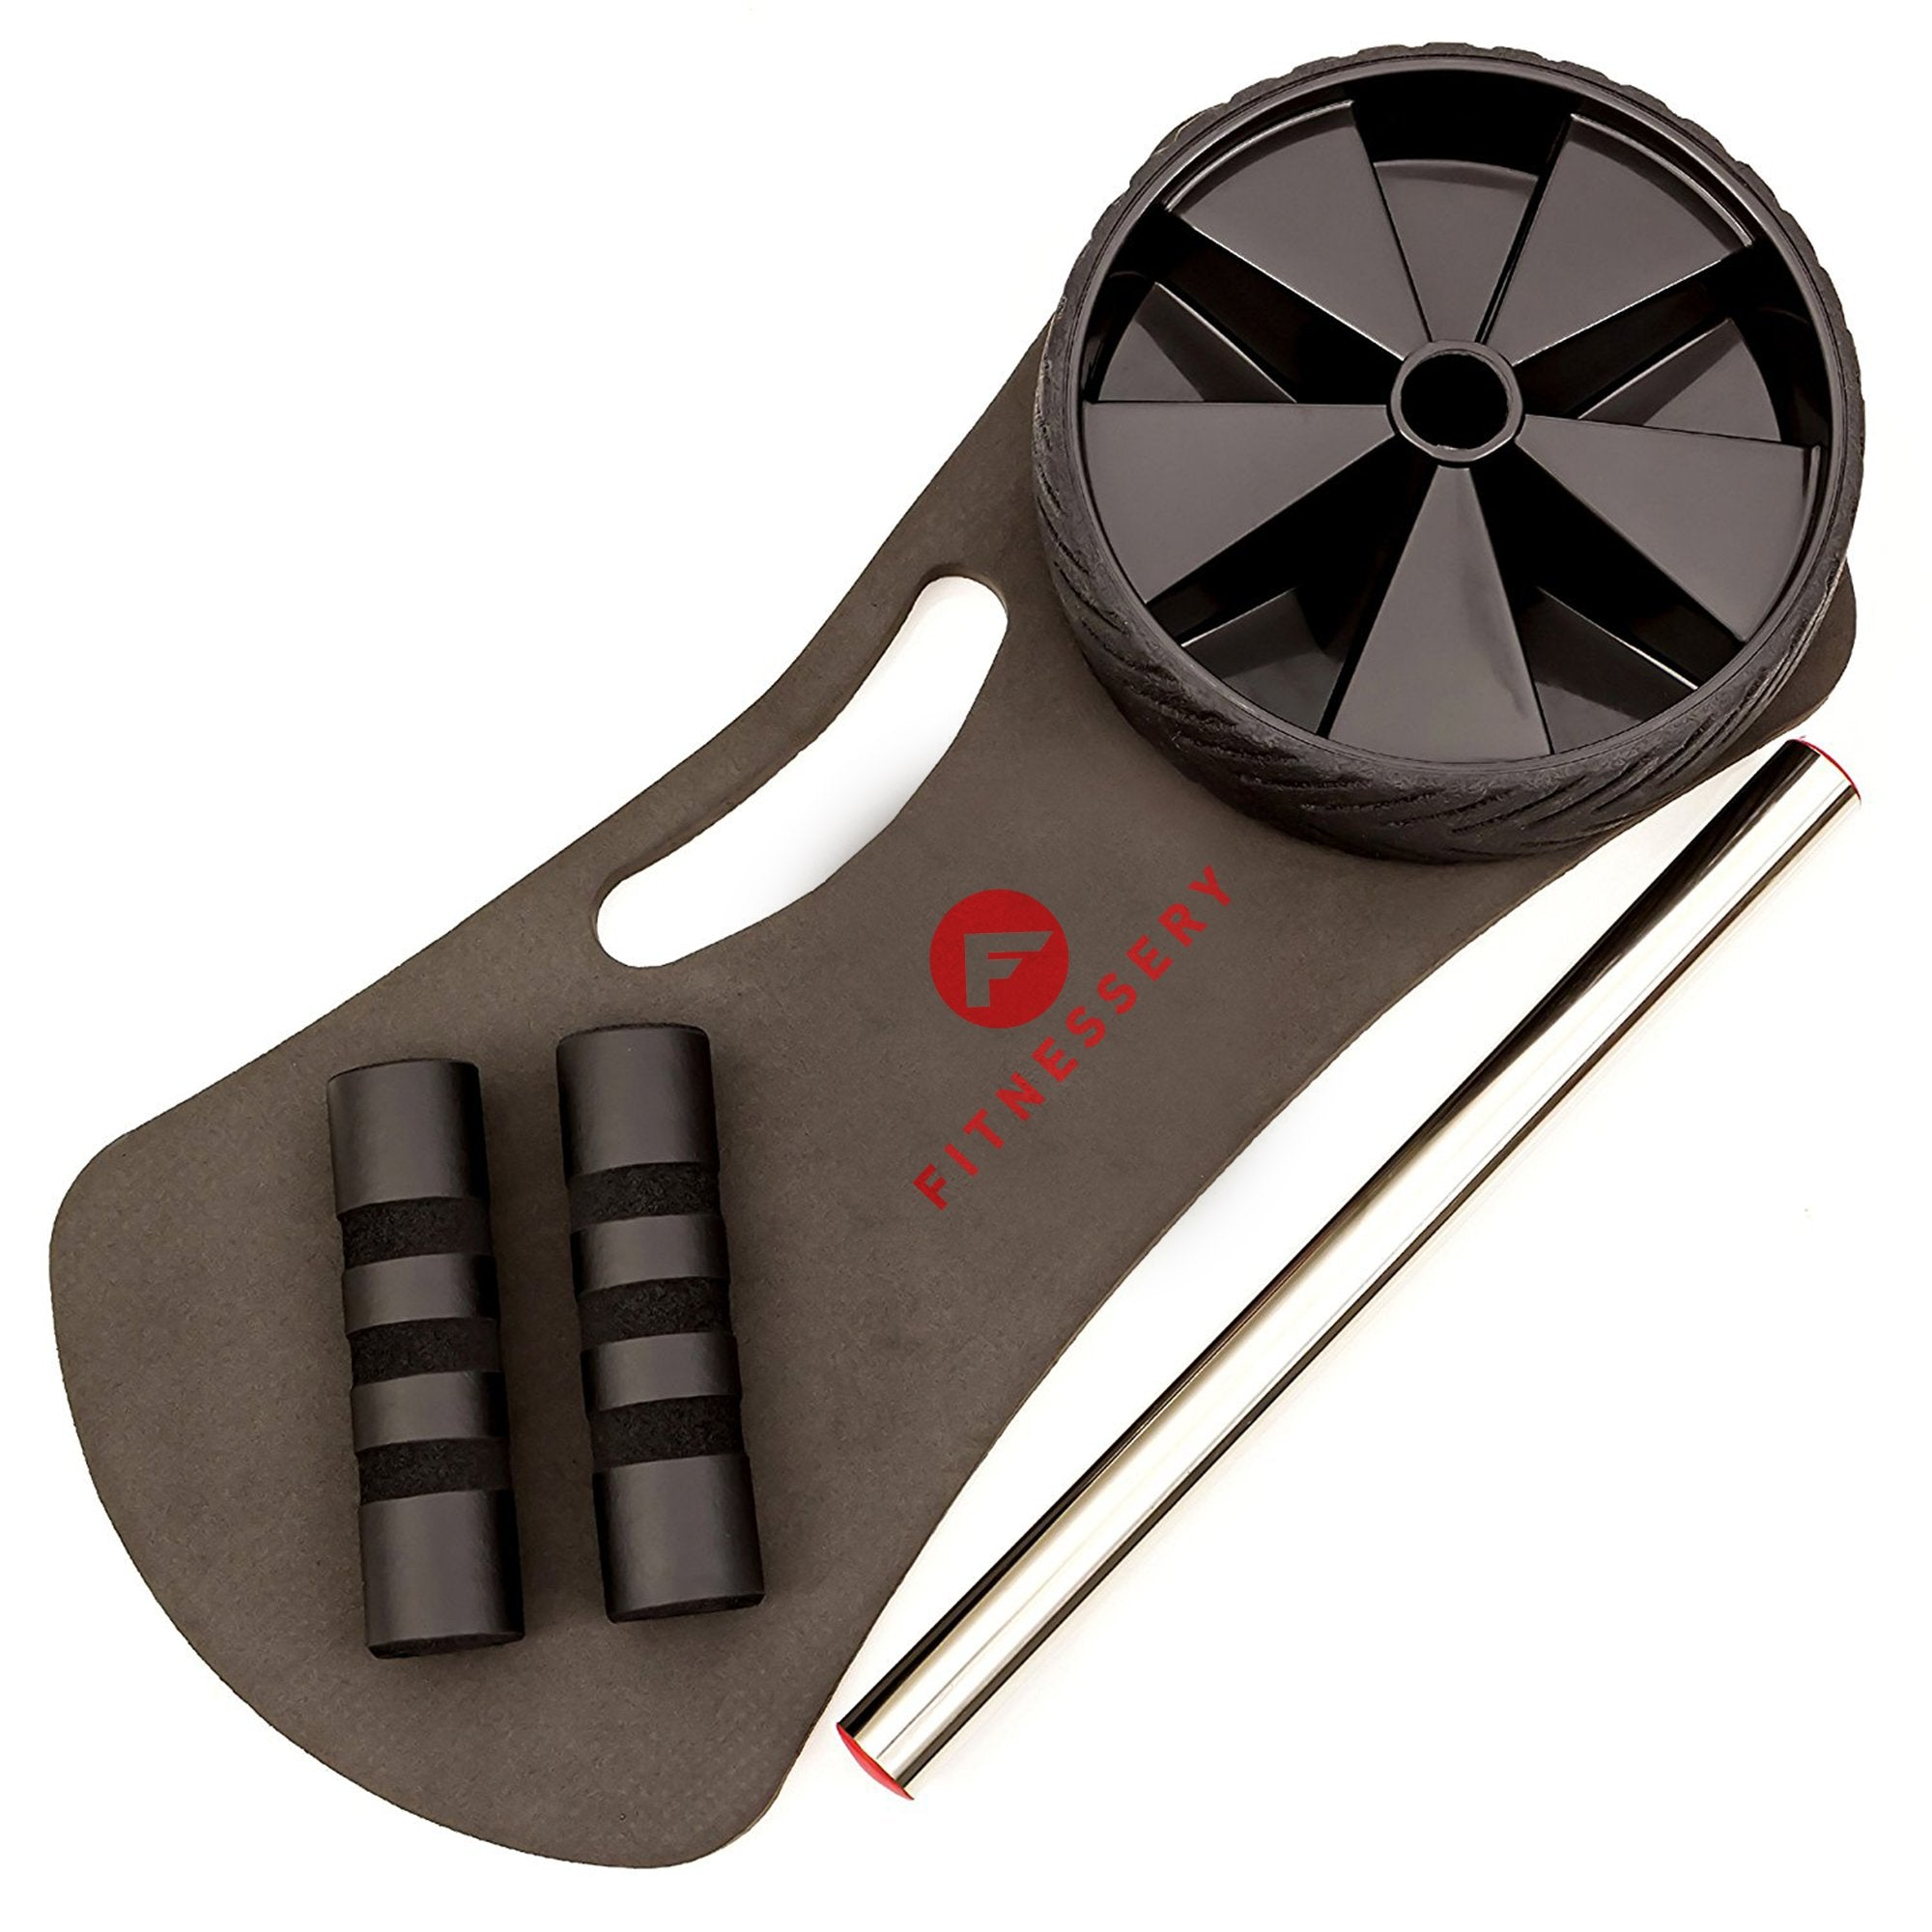 Ab Roller for Abs Workout - Ab Roller Wheel Exercise Equipment - Ab Wheel Exercise Equipment - Ab Wheel Roller for Home Gym - Ab Machine for Ab Workout - Ab Workout Equipment - Abs Roller Ab Trainer